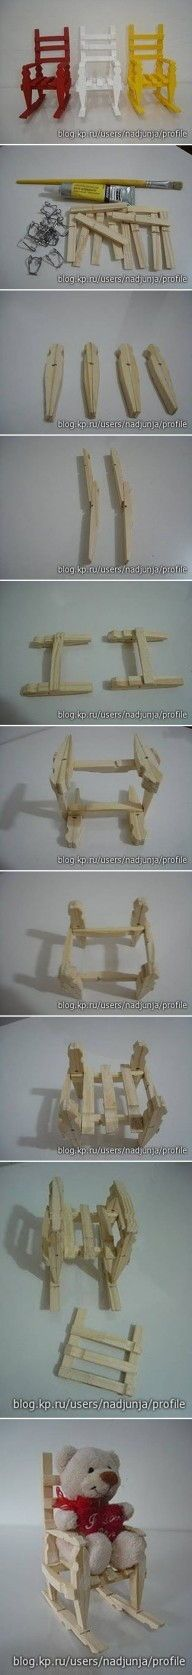 DIY Clothespin Rocking Chair DIY Projects